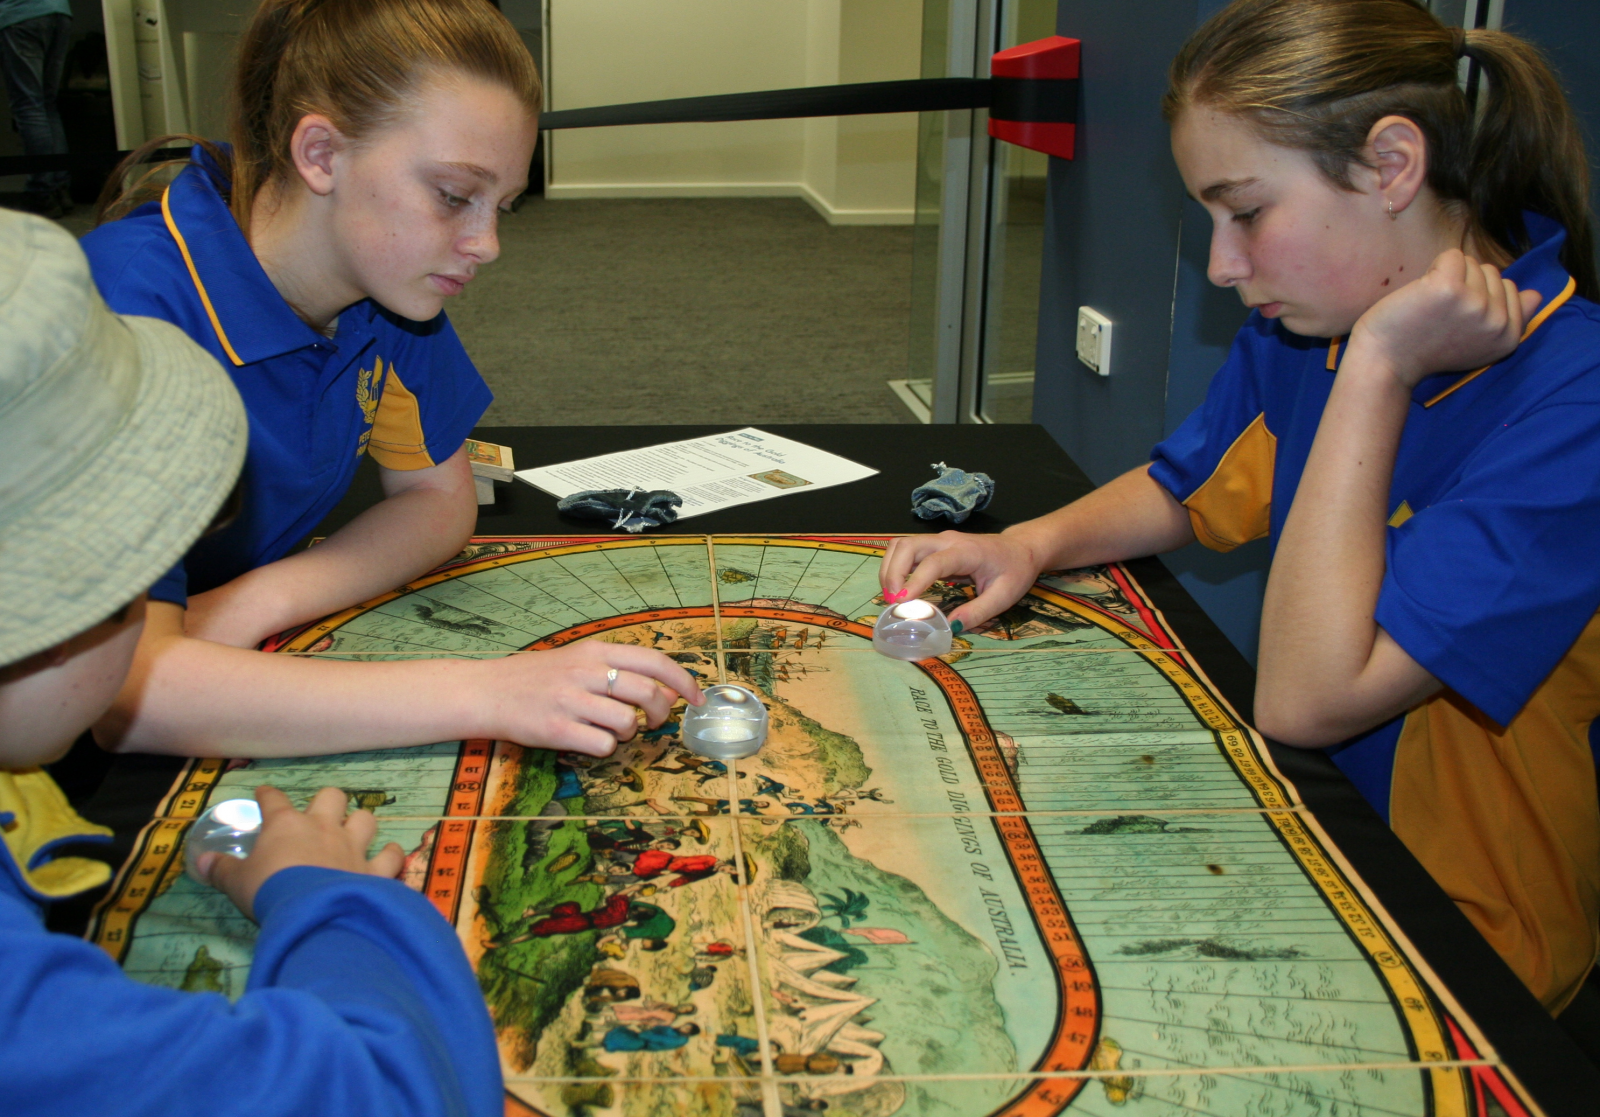 Students engaging in the Opposite of bored program at the State Library of SA